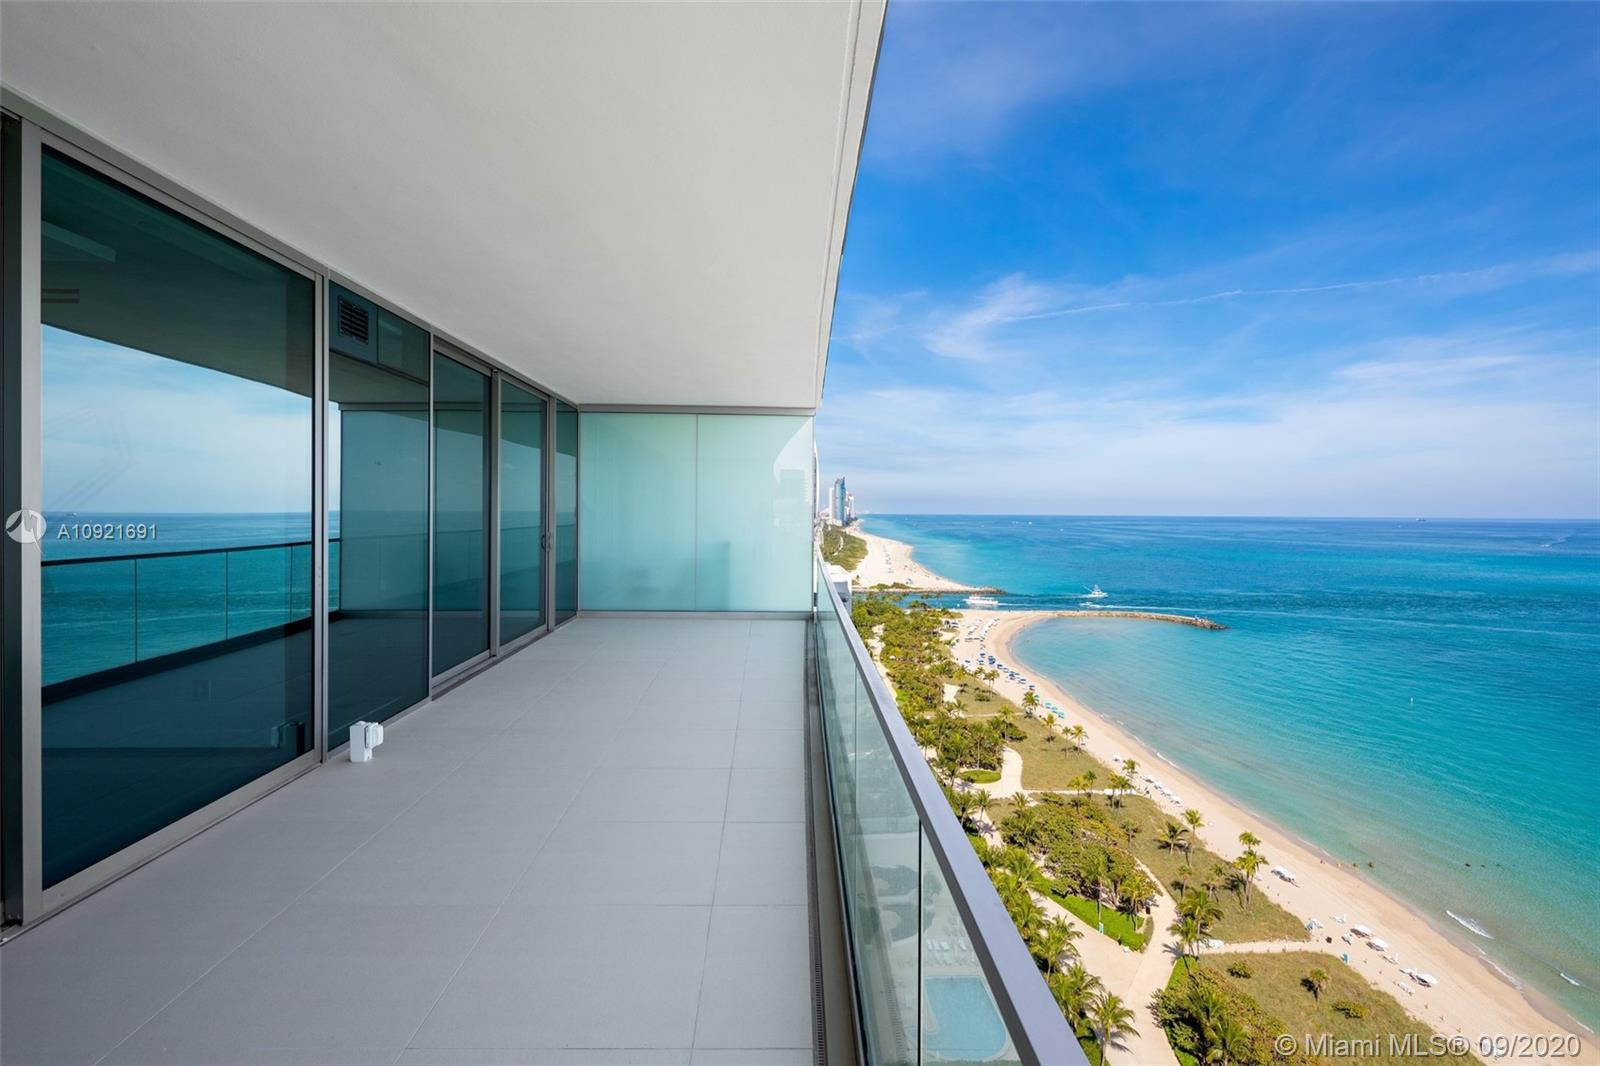 10201 Collins Ave, Unit #2103 Luxury Real Estate